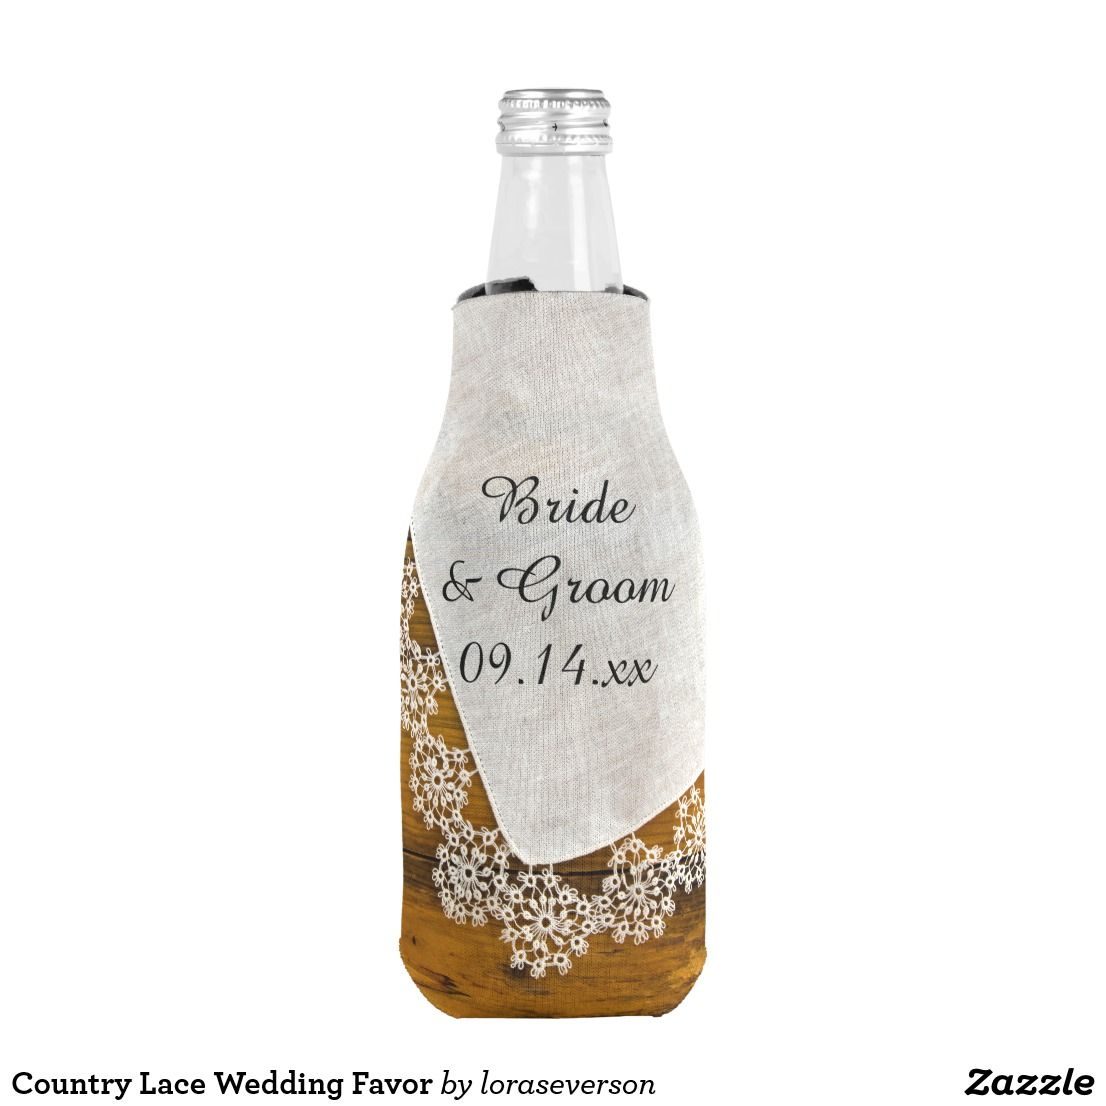 Country Lace Barn Wedding Favor Bottle Cooler | Wedding koozies ...